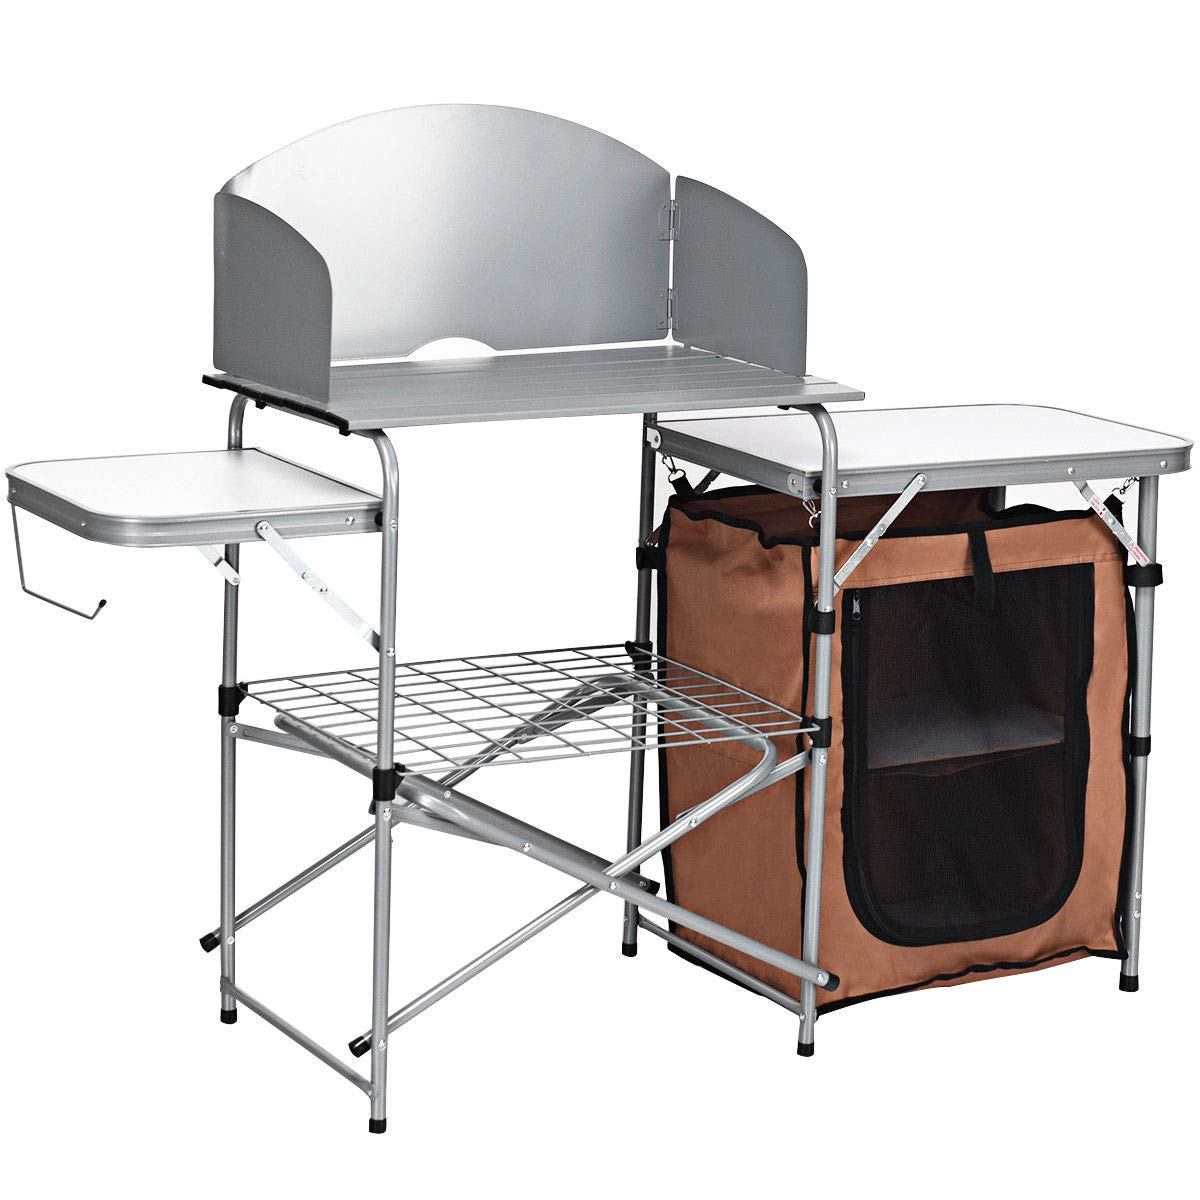 Giantex Folding Grill Table with Storage Lower Shelf and Windscreen Aluminum Folding Cook Station Quick Set-up and Lightweight for BBQ, Party, Camping, Picnics, Backyards and Tailgating, BBQ Table by Giantex